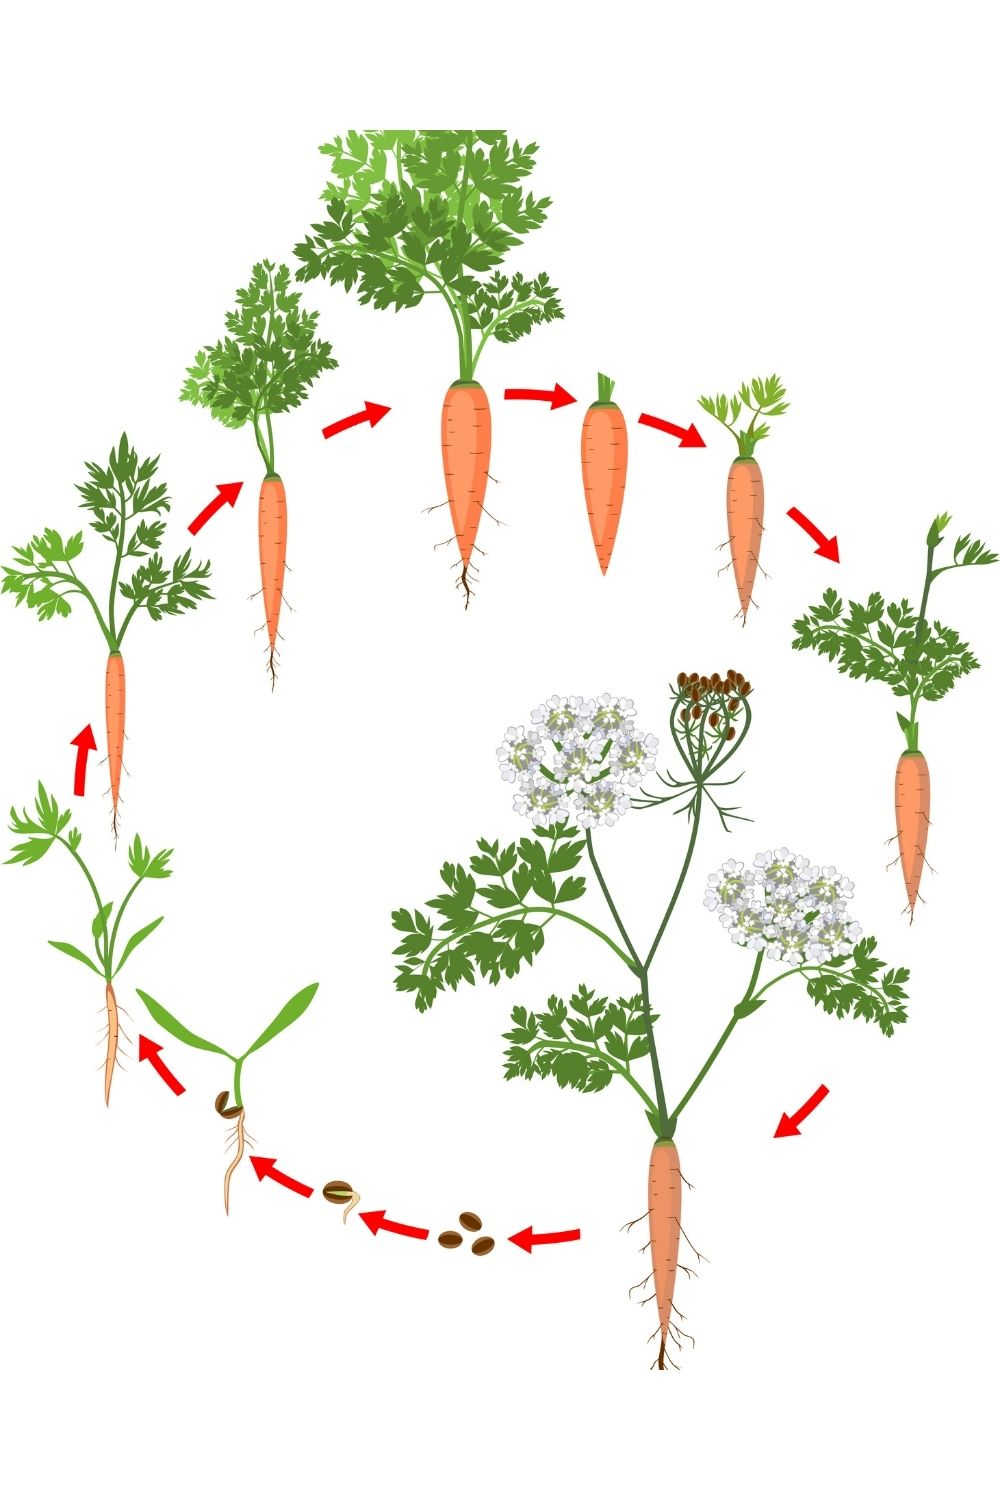 illustrated image showing the growth cycle of a carrot over a period of two years, from seed to flowering carrot